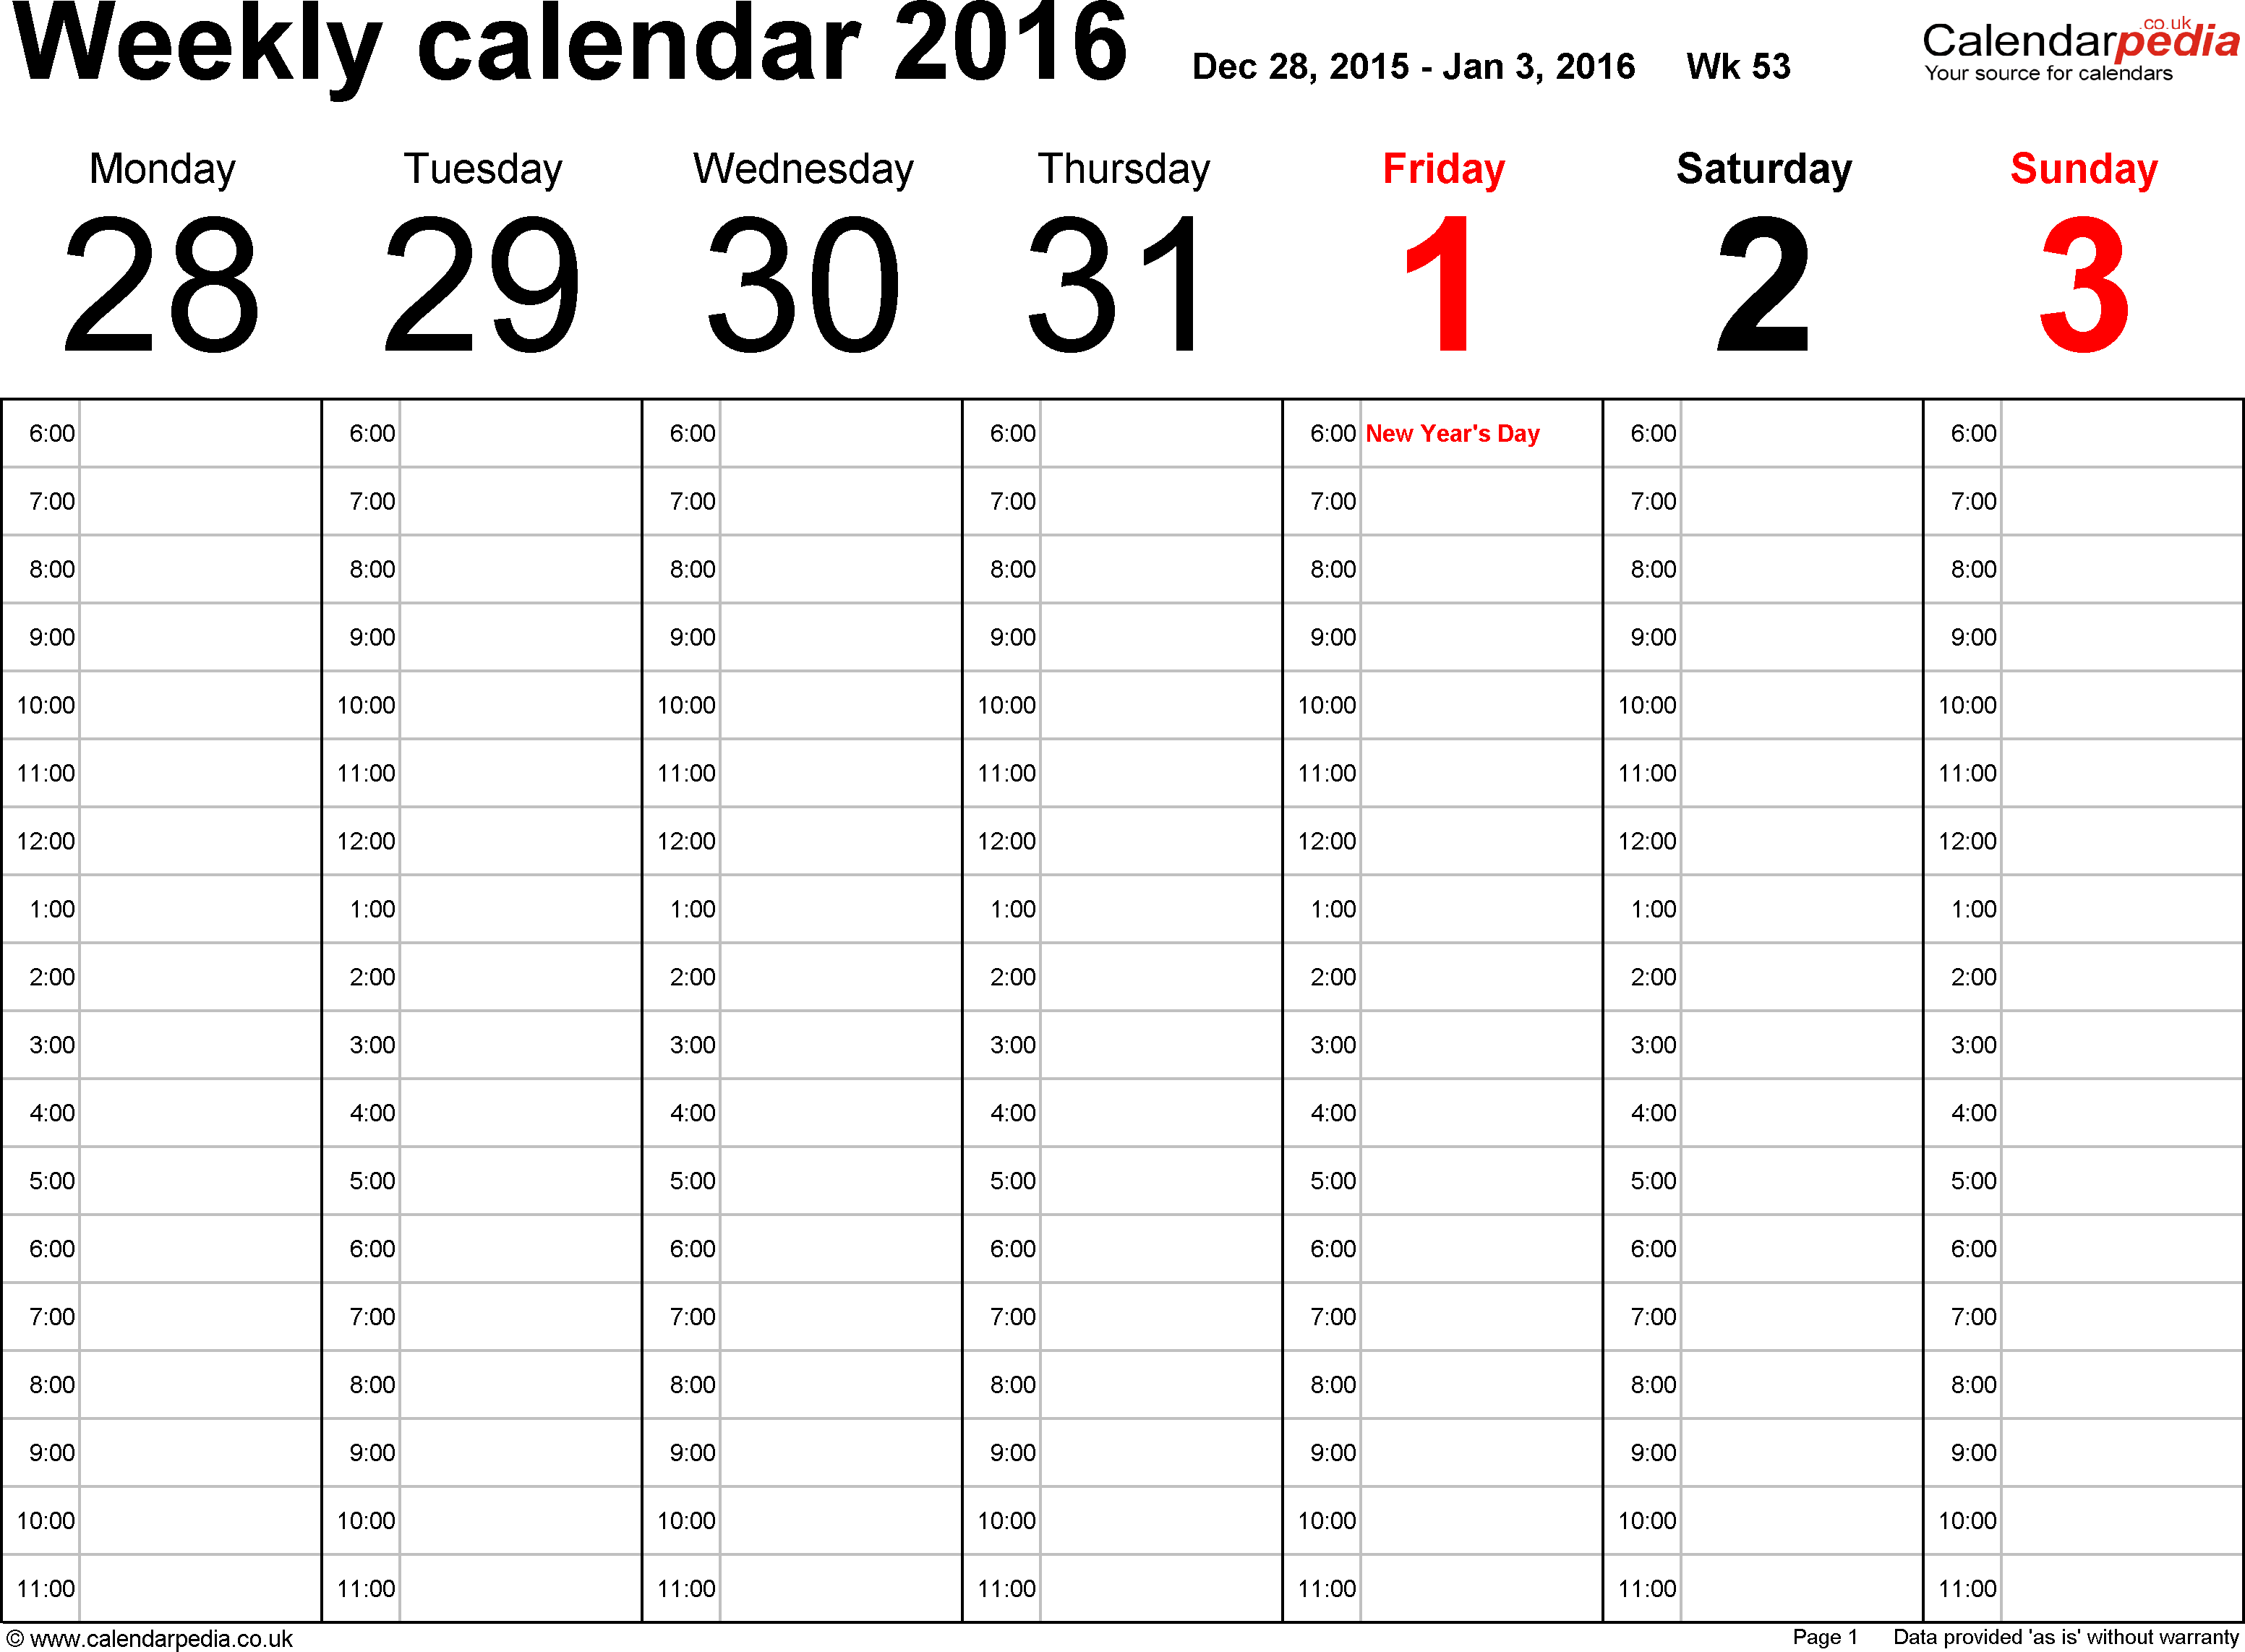 Download PDF template 1: Weekly calendar 2016, landscape orientation, 53 pages (1 calendar week on 1 page), time management layout (showing 18 hours per day from 6am to midnight in 1 hour steps)